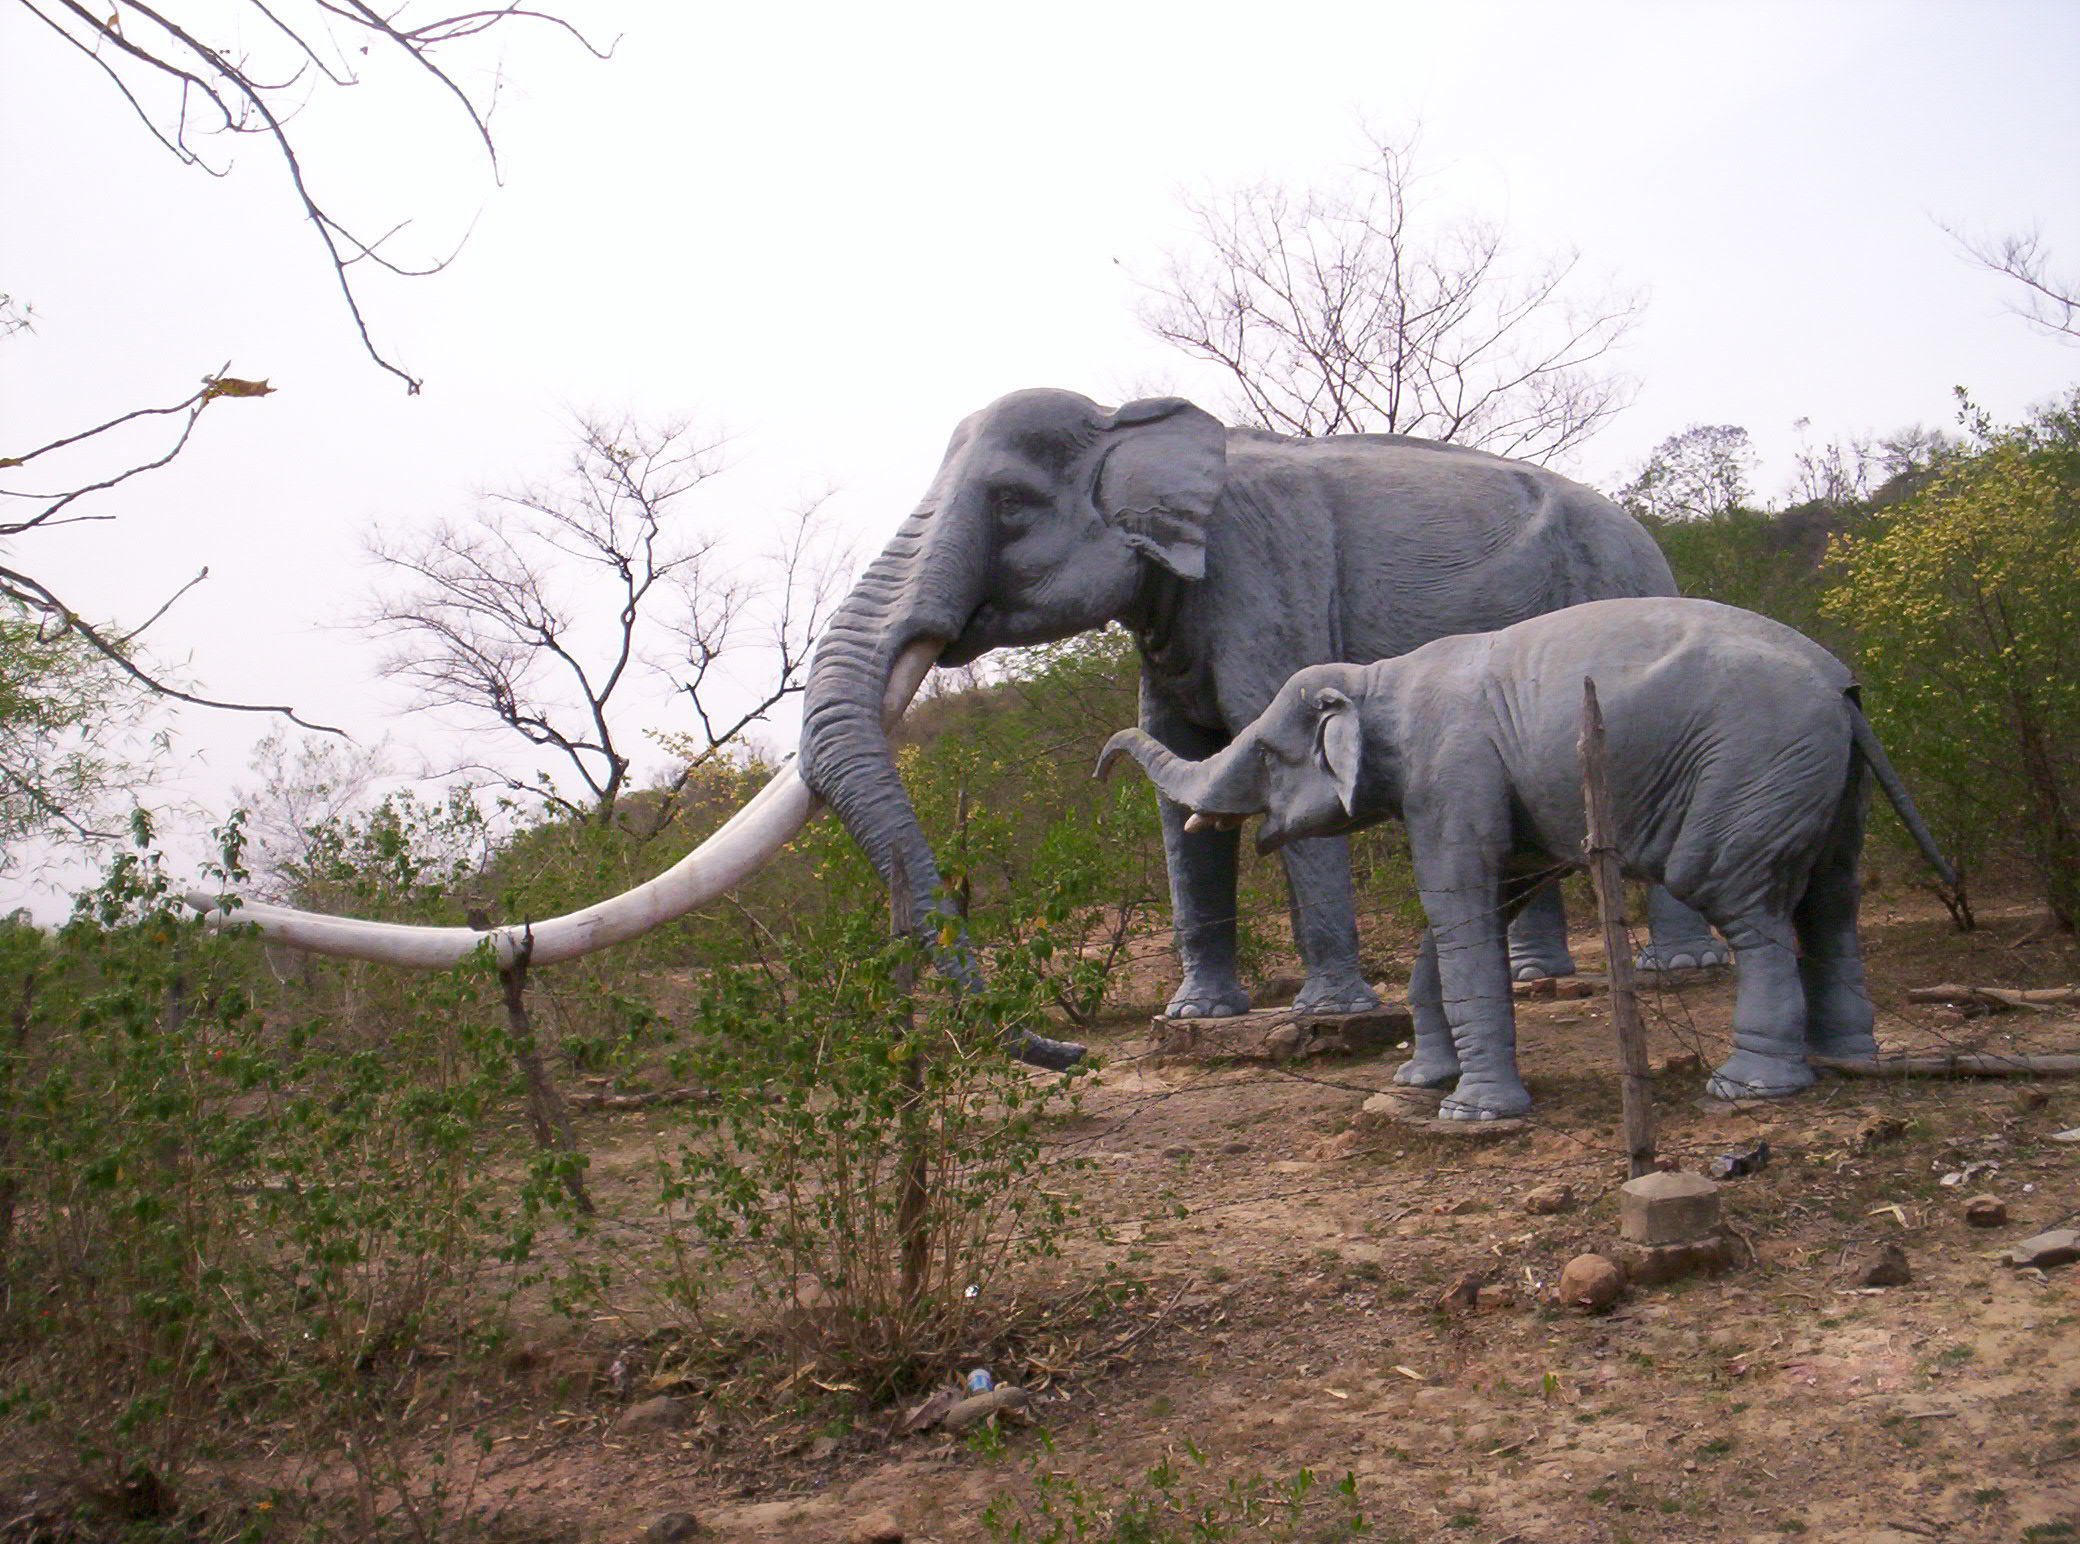 the four tusked elephant